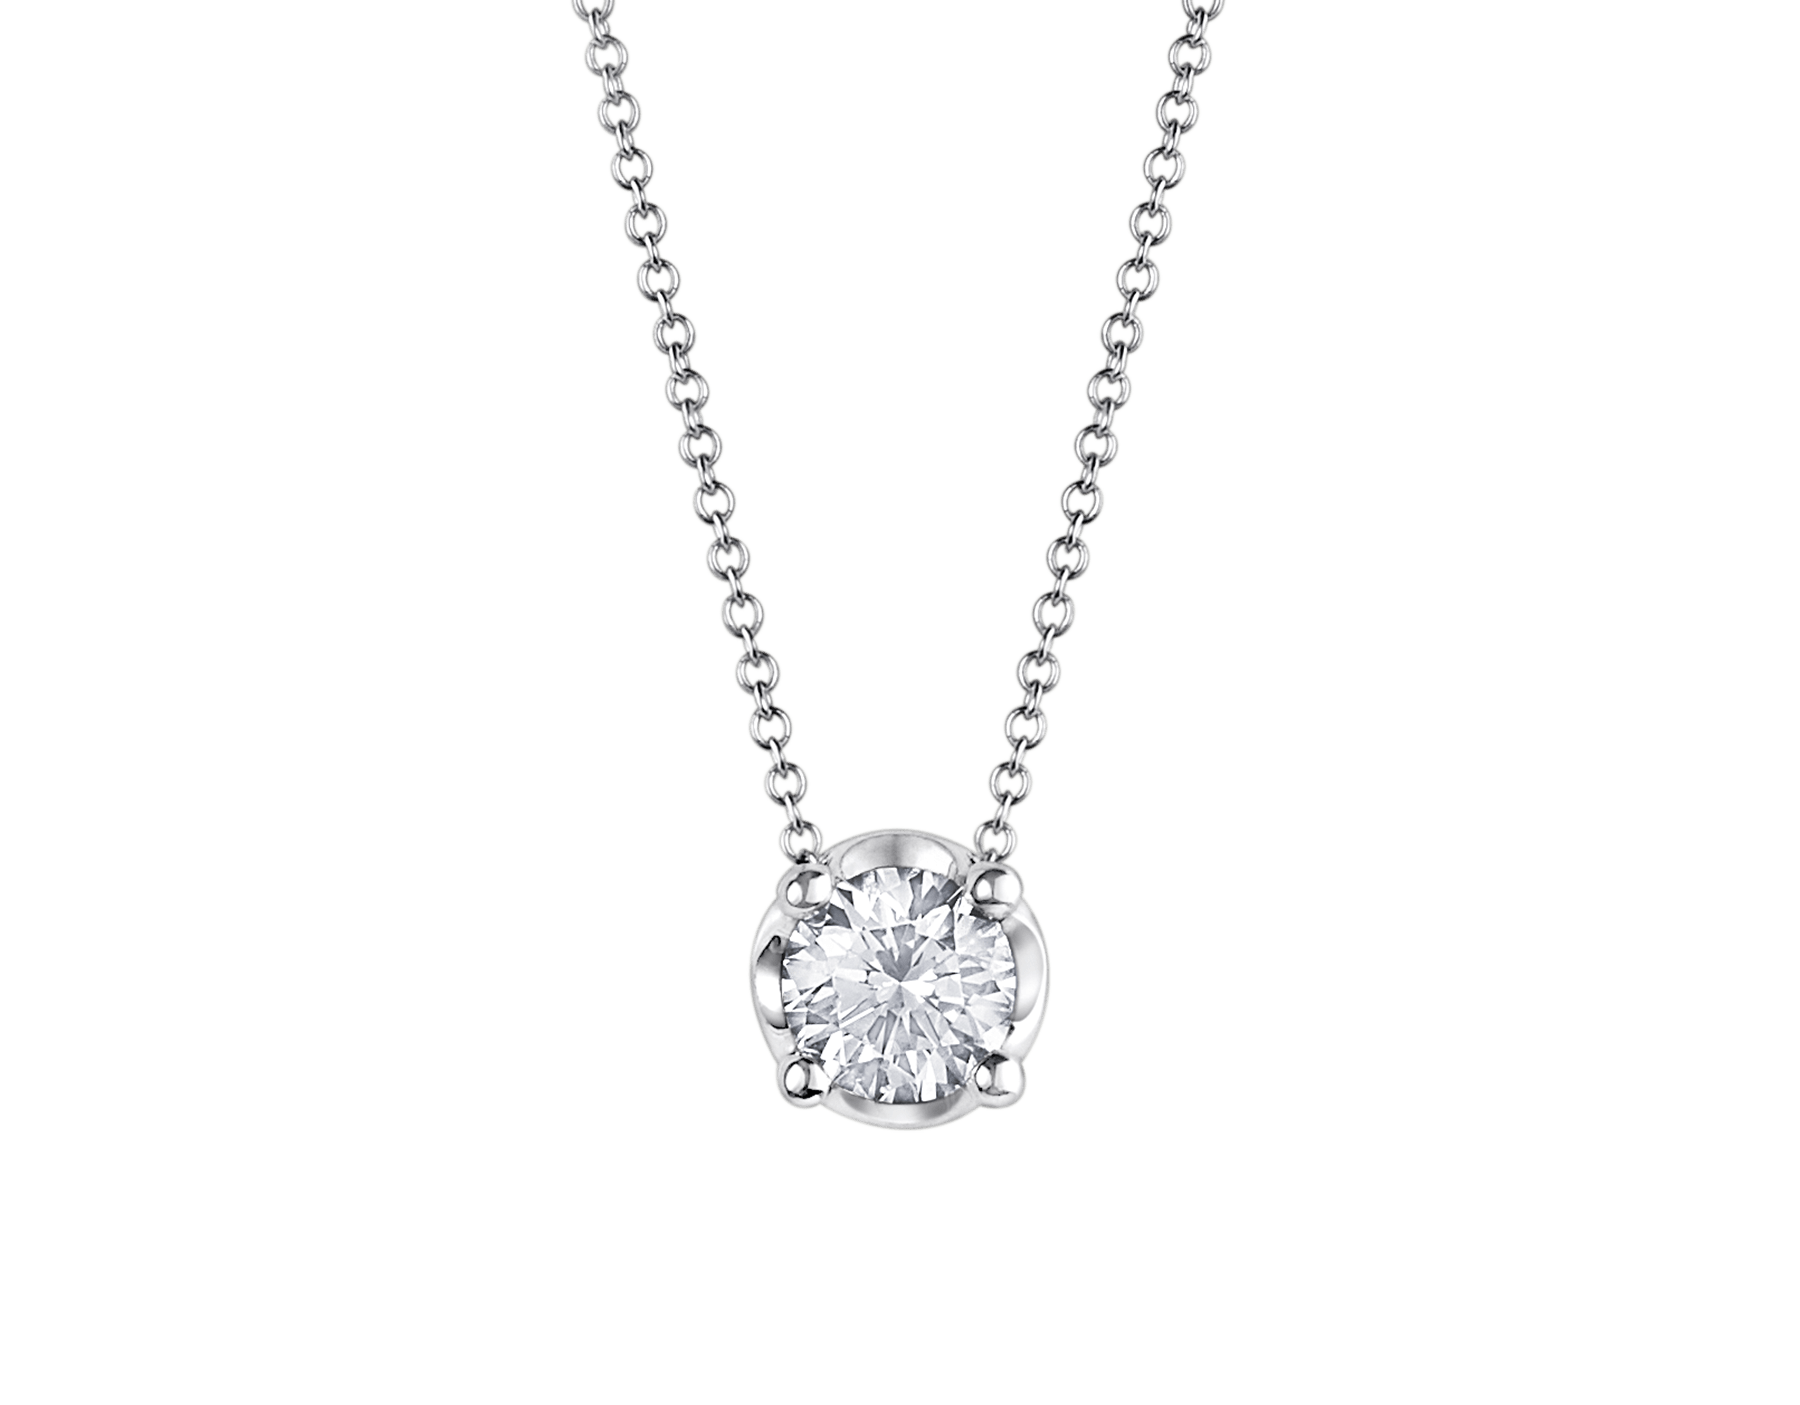 Corona necklace with 18 kt white gold chain and 18 kt white gold pendant set with a round brilliant cut diamond CL-CORONA image 1